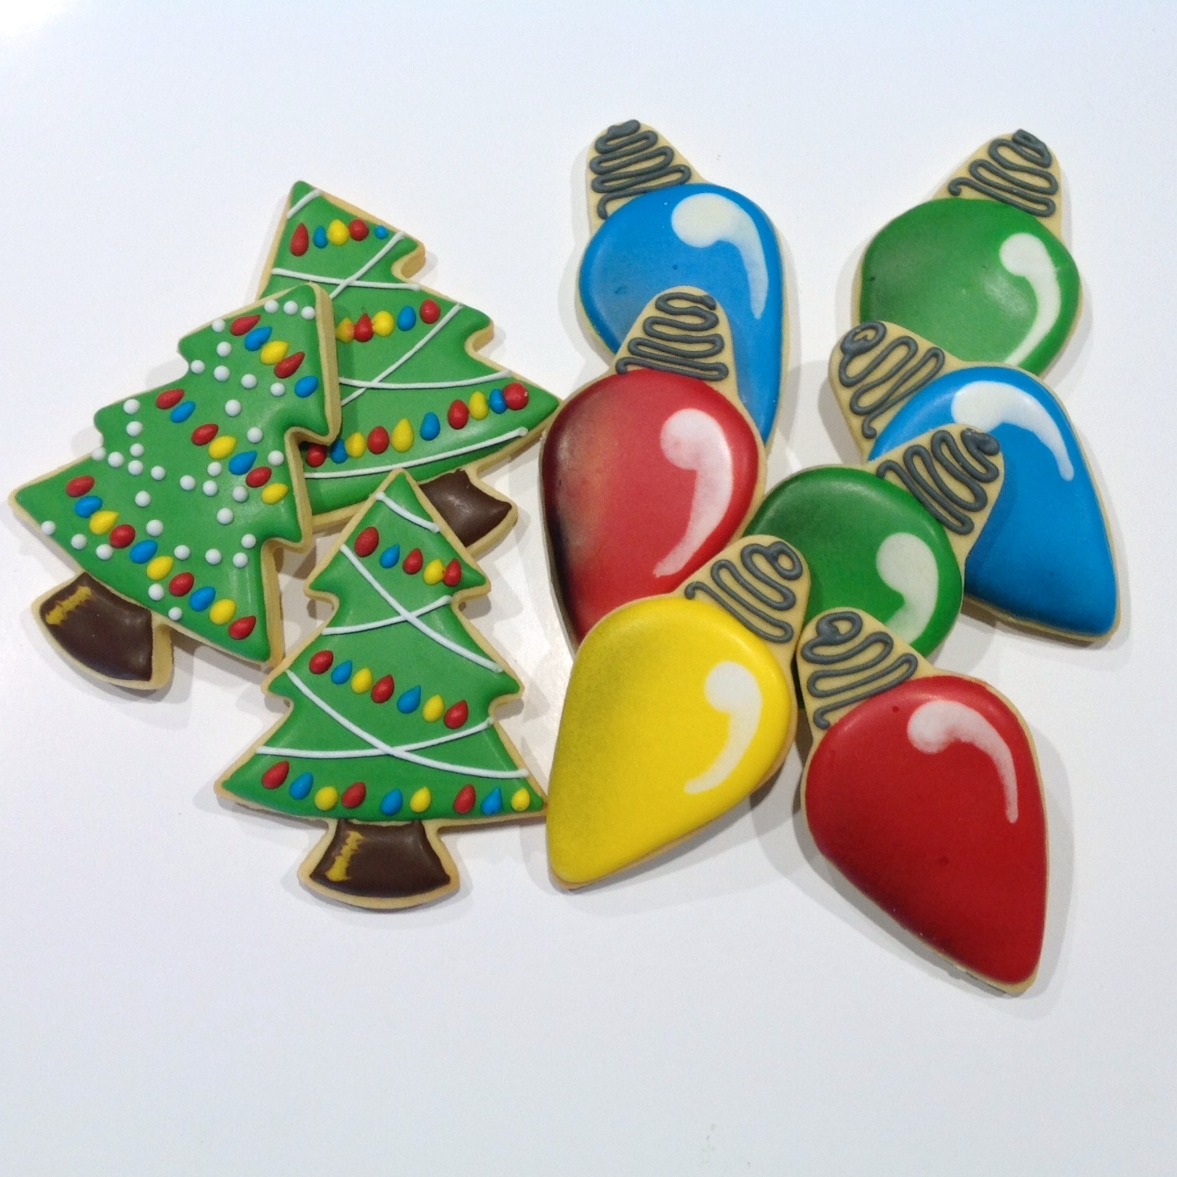 Image gallery of popular decorating christmas tree cookies royal icing